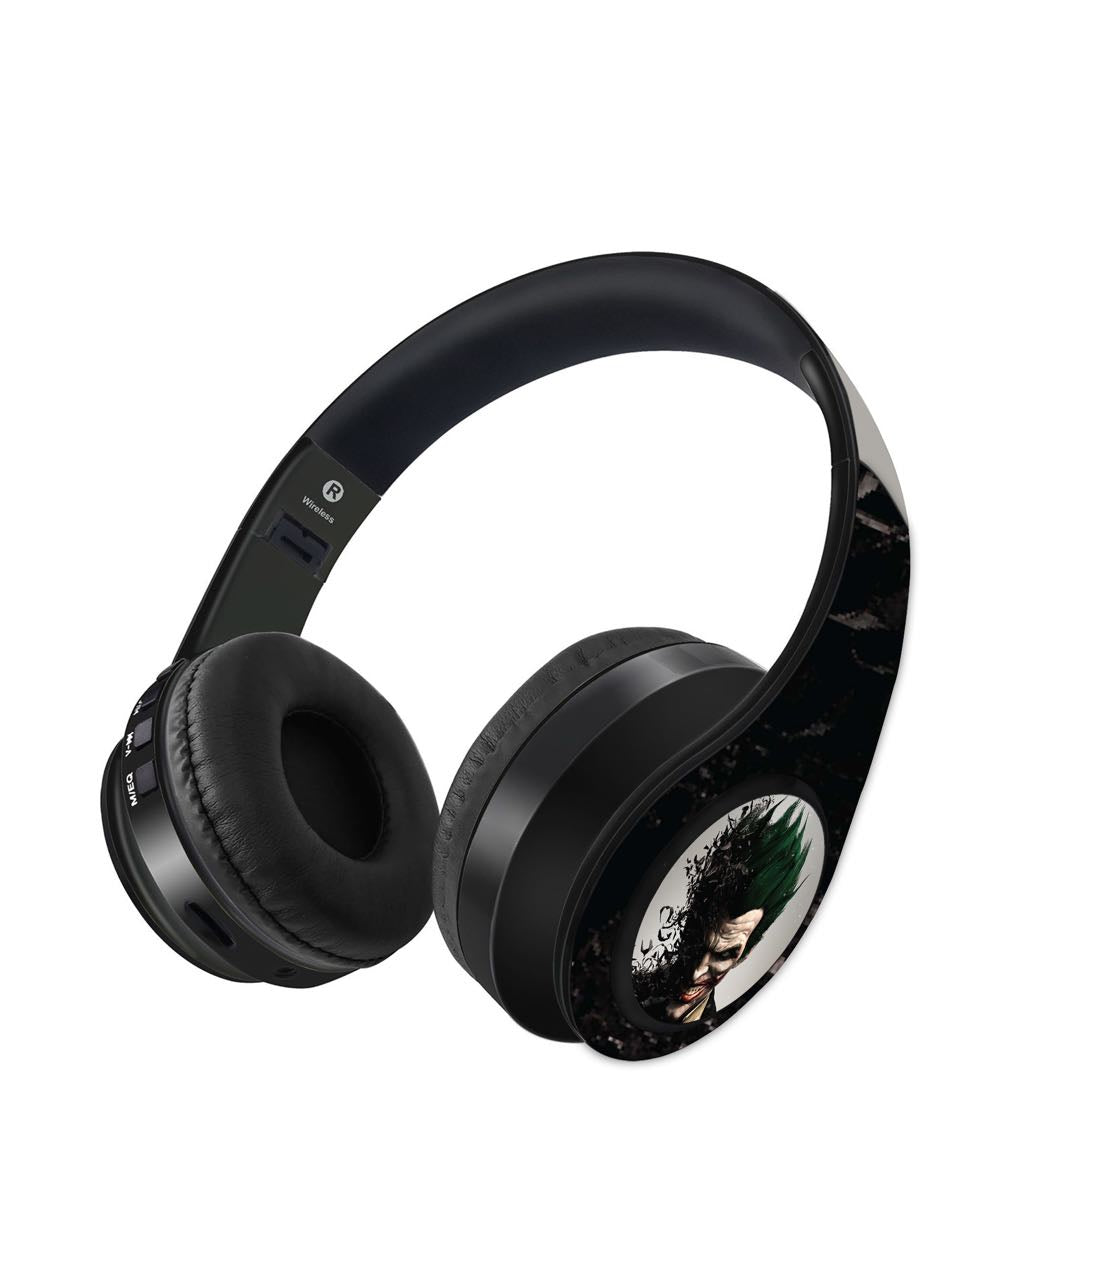 Joker Withers - Decibel Wireless On Ear Headphones